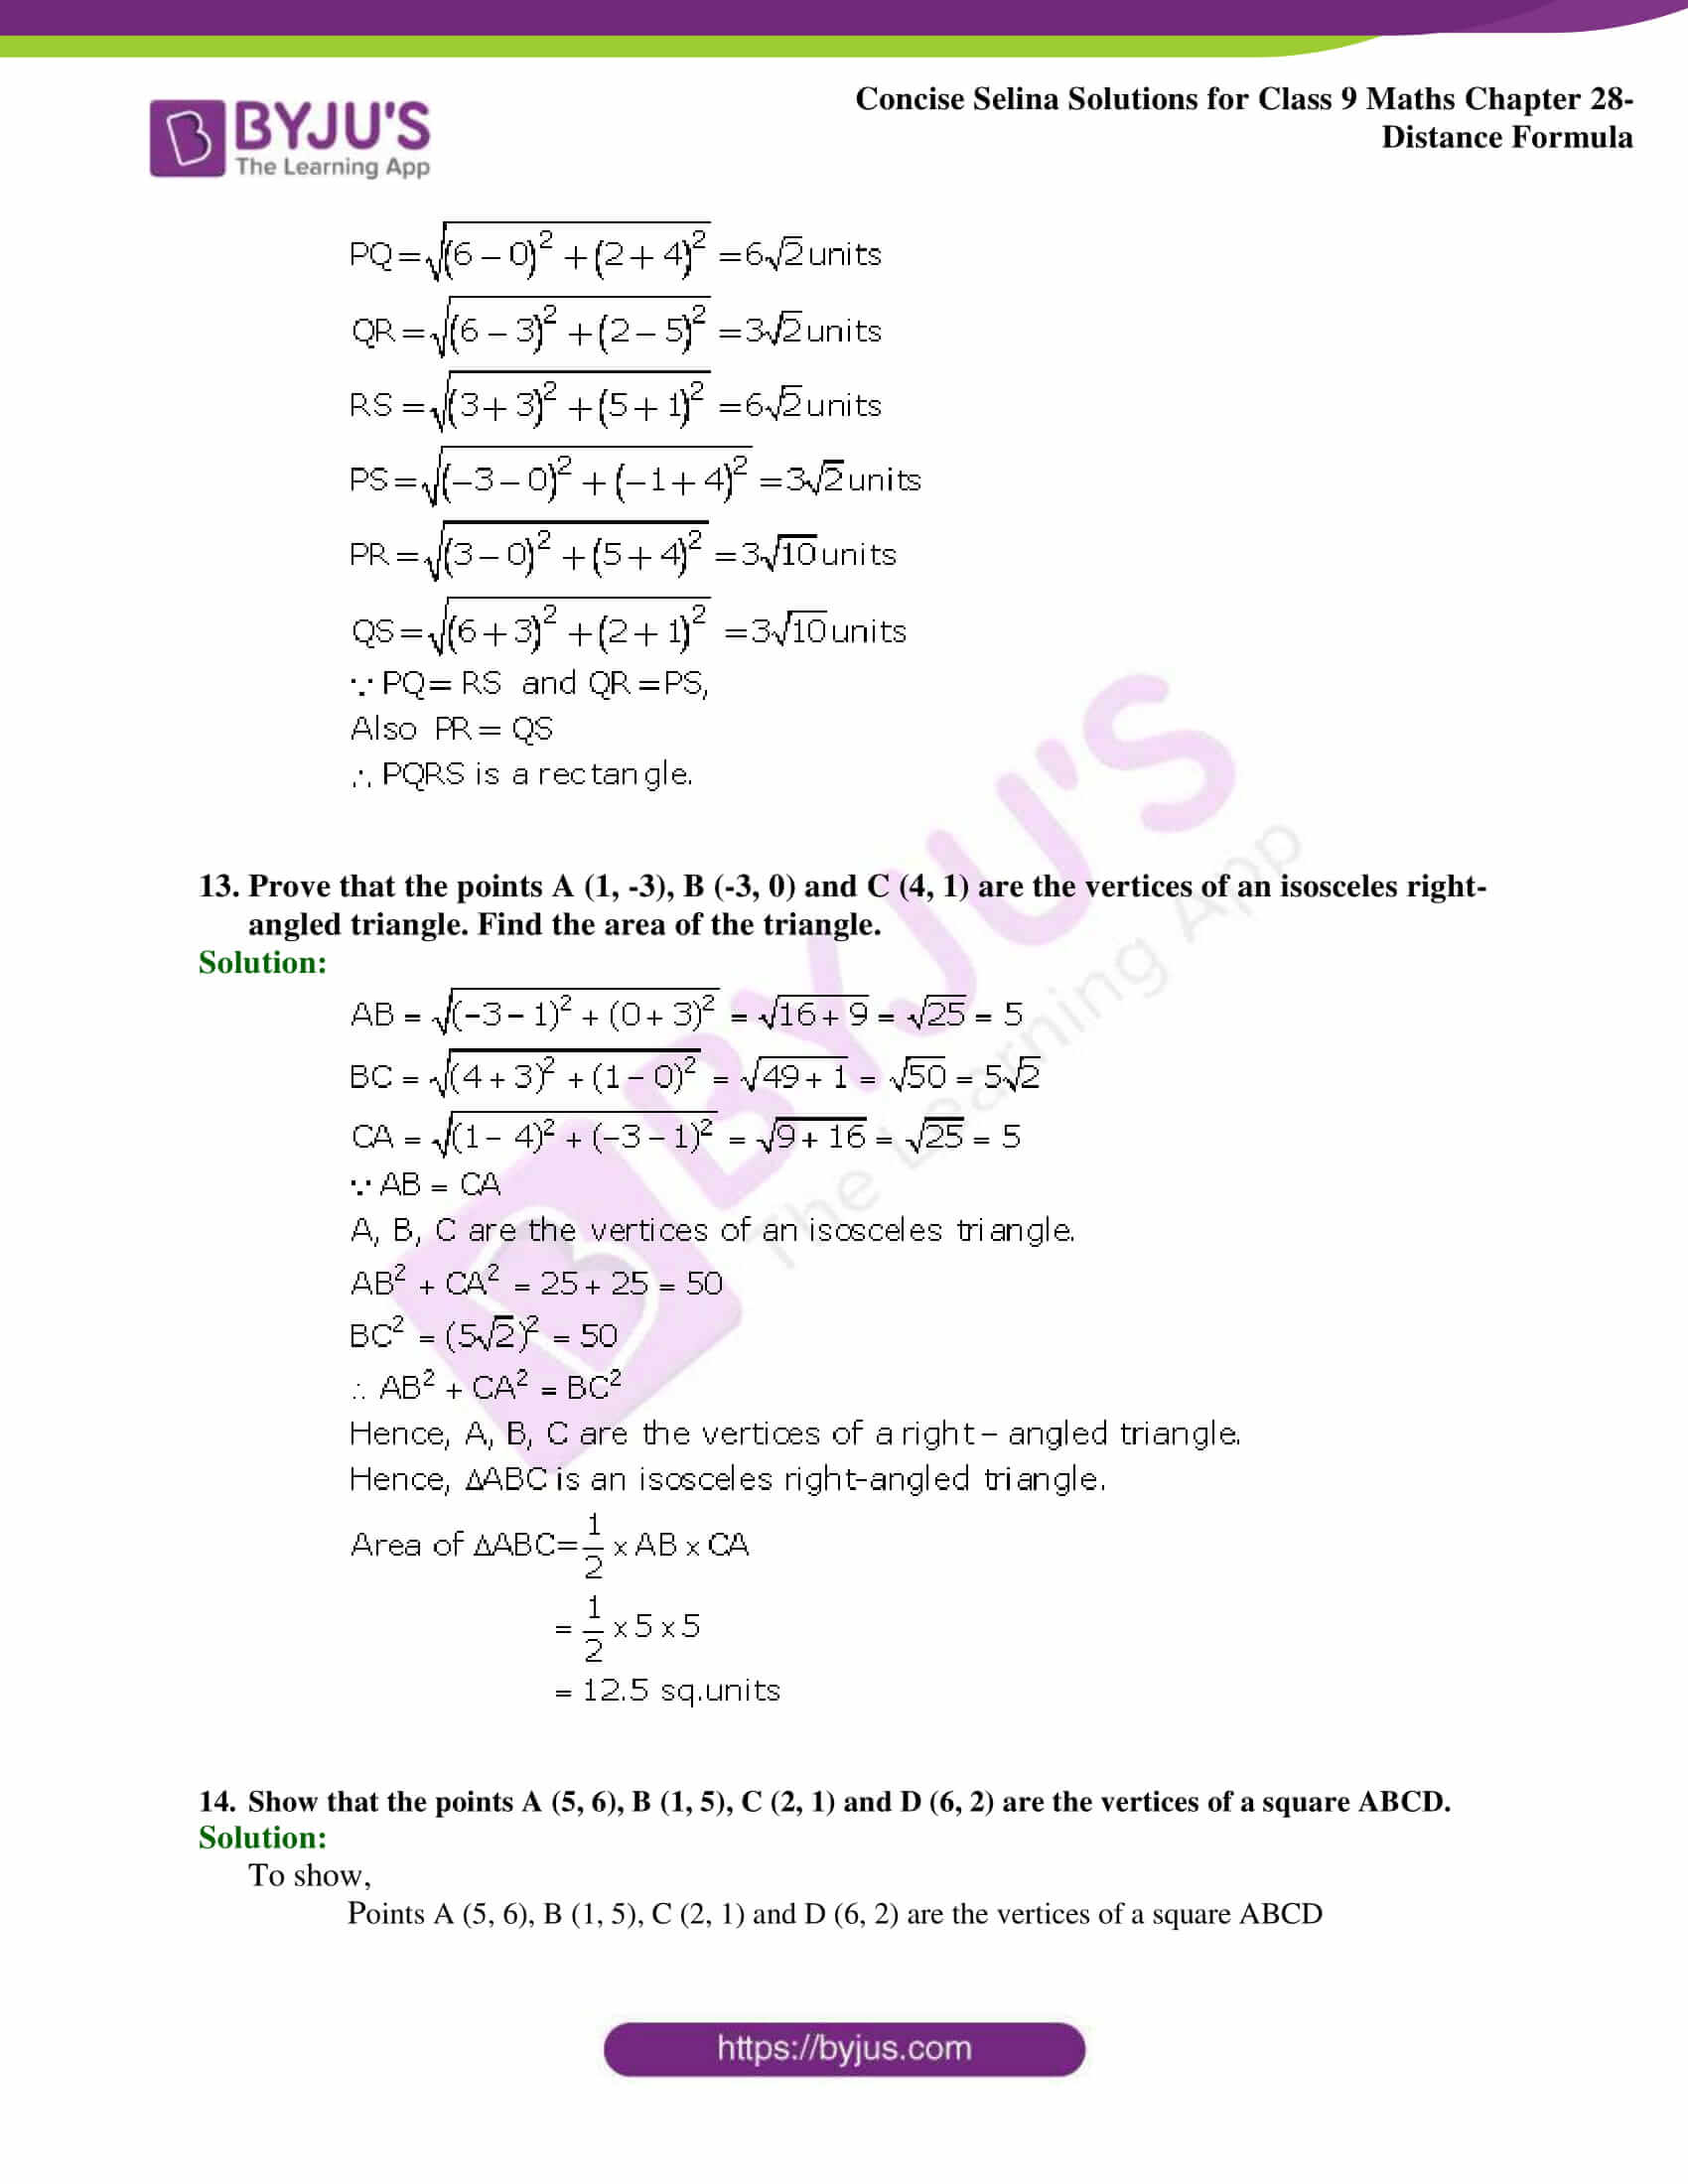 Concise Selina Solutions Class 9 Maths Chapter 28 Distance Formula part 06